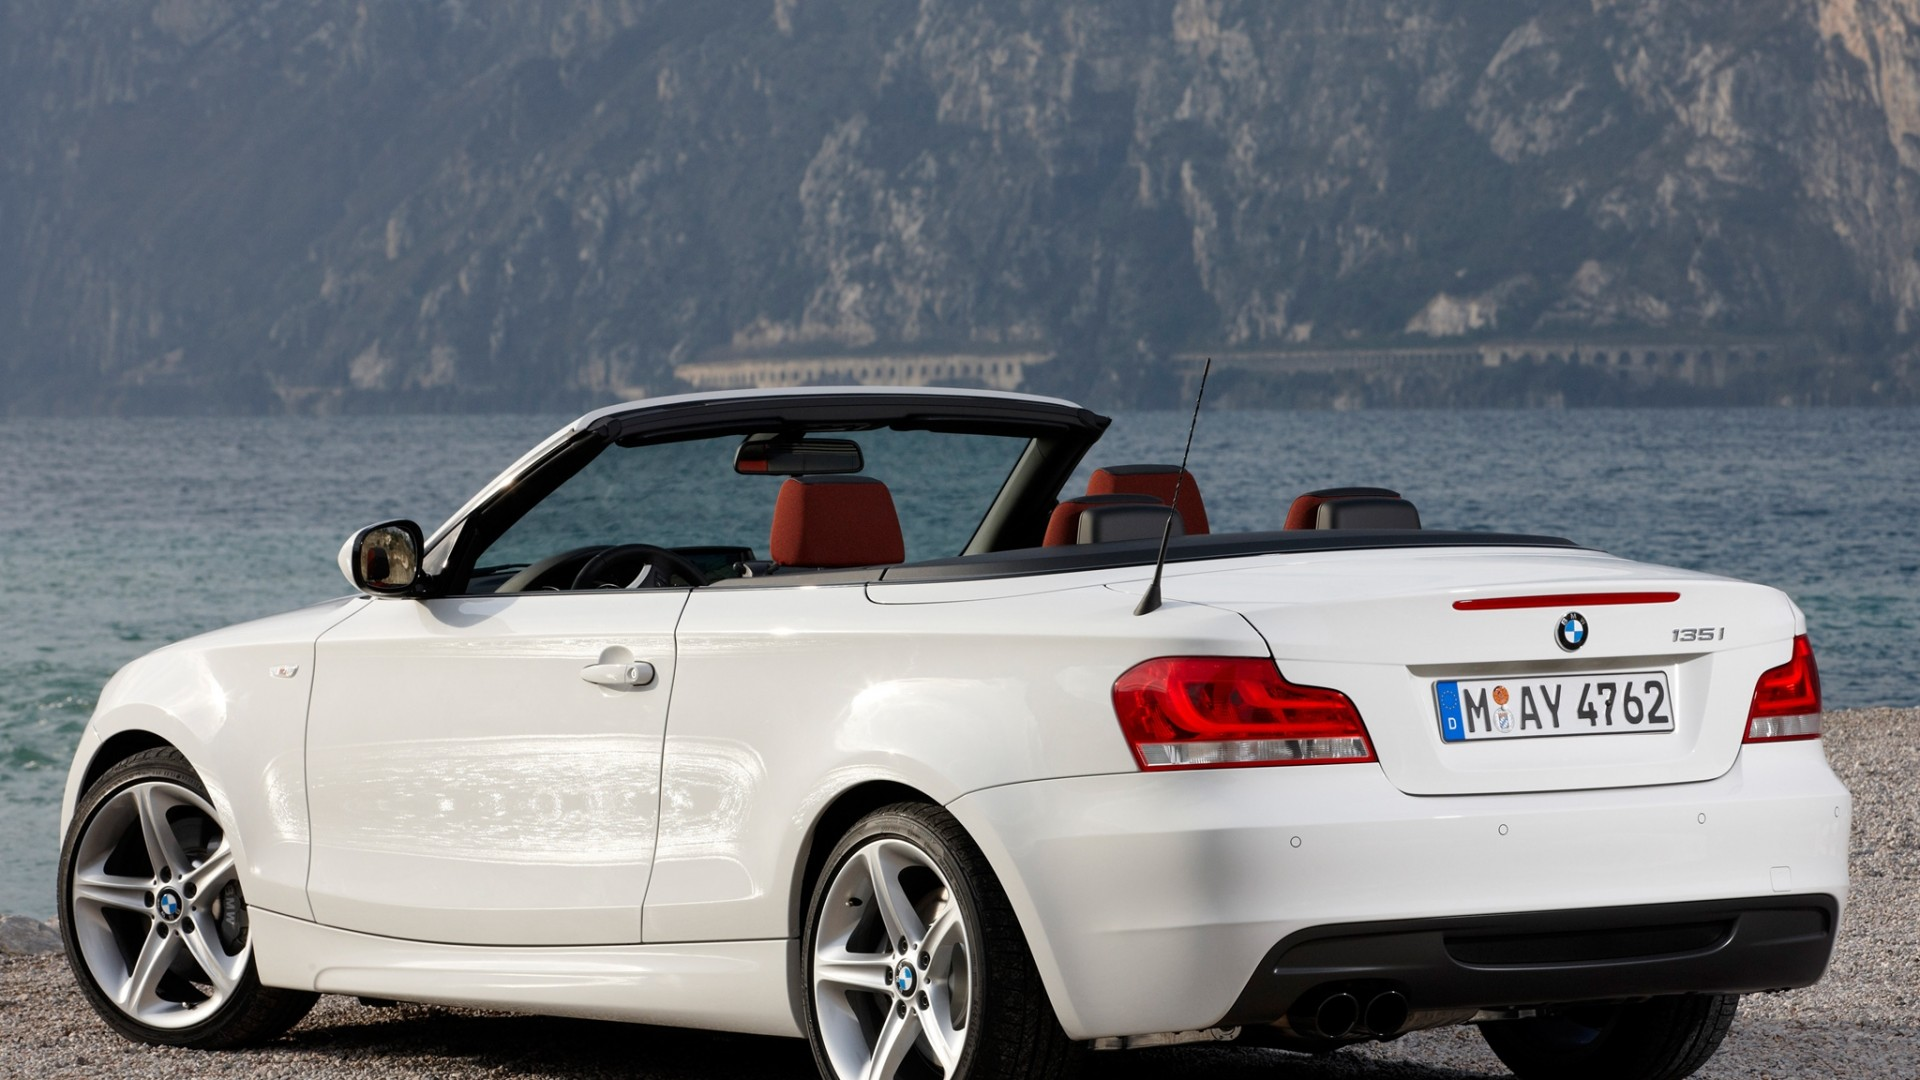 Res: 1920x1080, BMW 135i Cabrio E88 Wallpapers Car wallpapers HD 2048x1536. Download  resolutions: Desktop:  ...